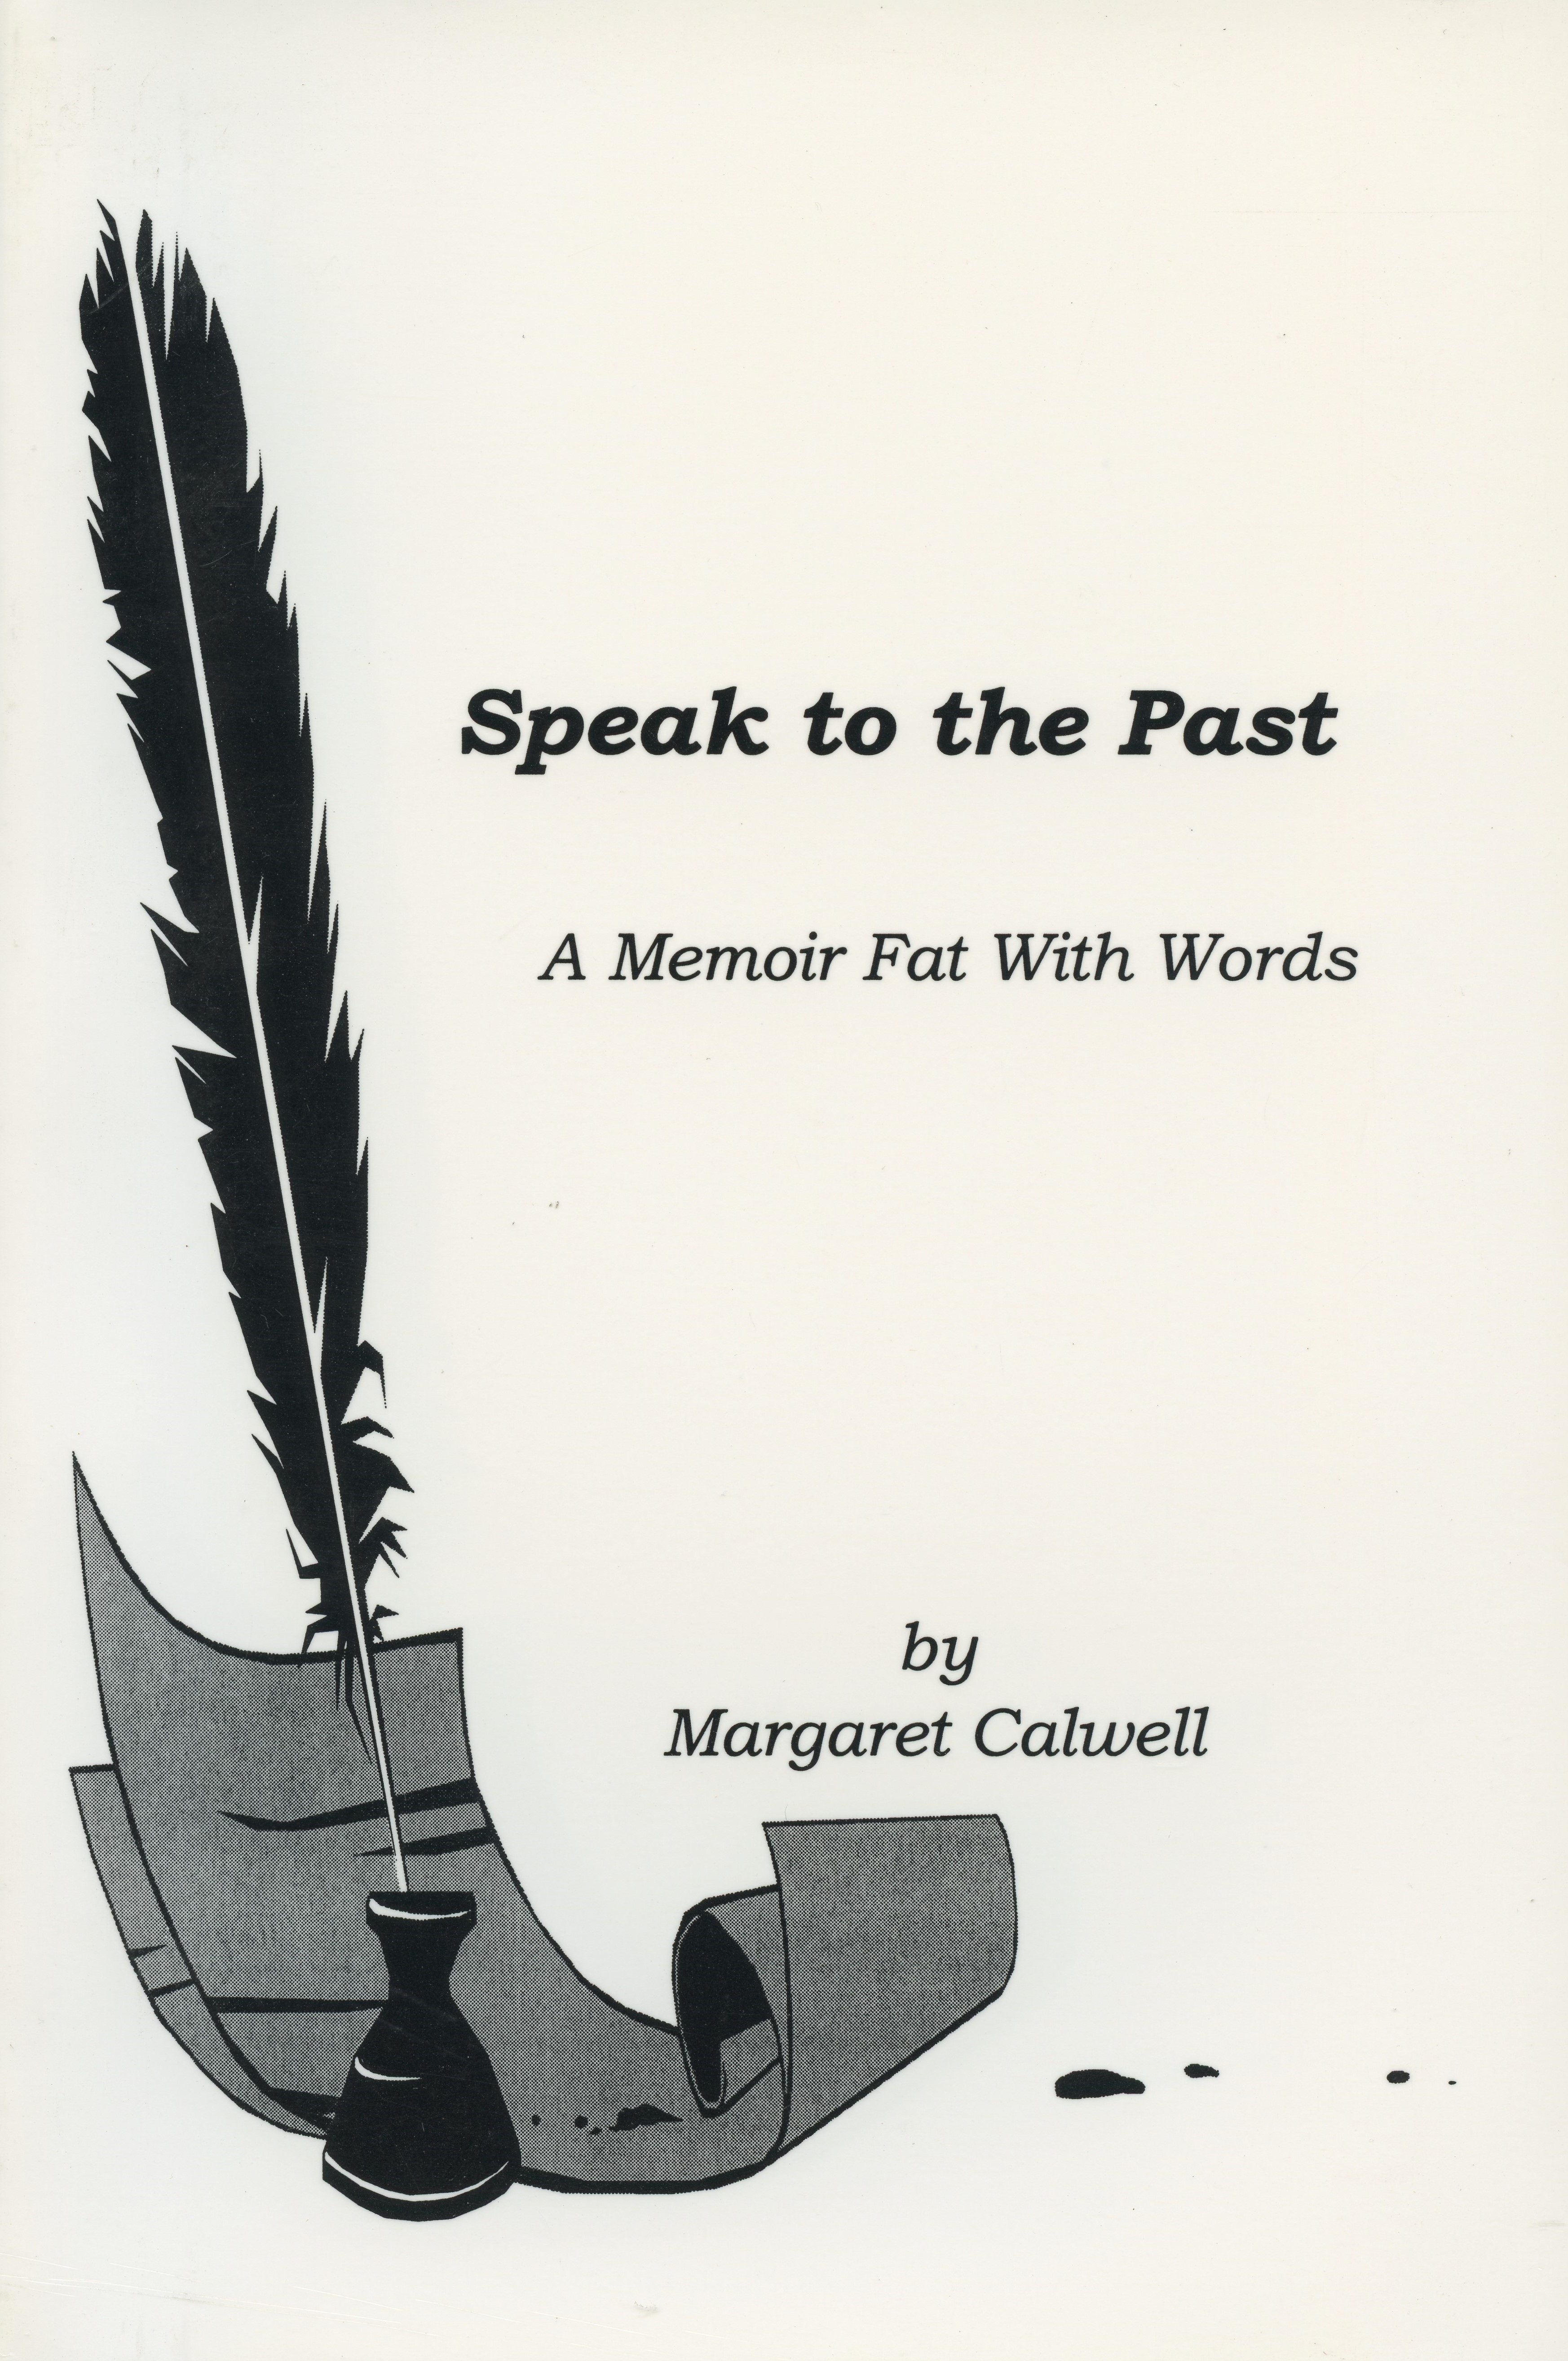 Speak to the Past: A Memoir Fat With Words